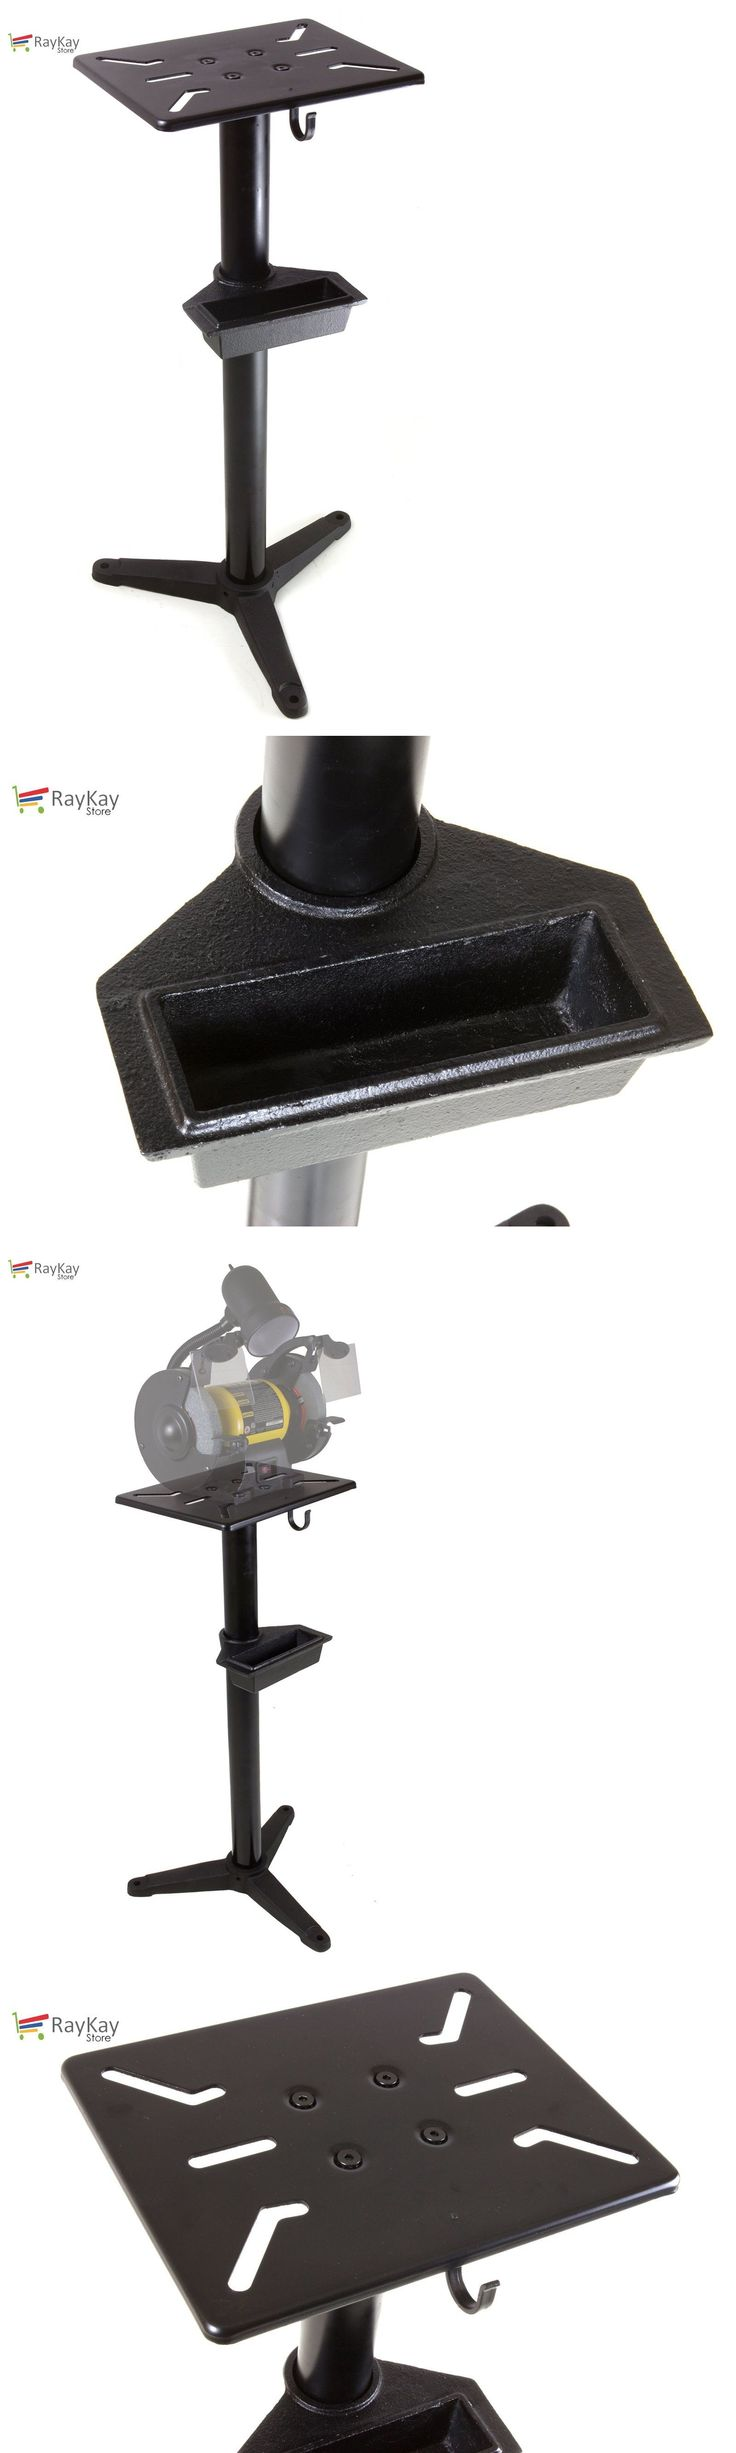 Bench Grinders 42277: Wen Craftsman Cast Iron Bench Grinder Pedestal Stand Water Pot Heavy Duty Power -> BUY IT NOW ONLY: $34.47 on eBay!